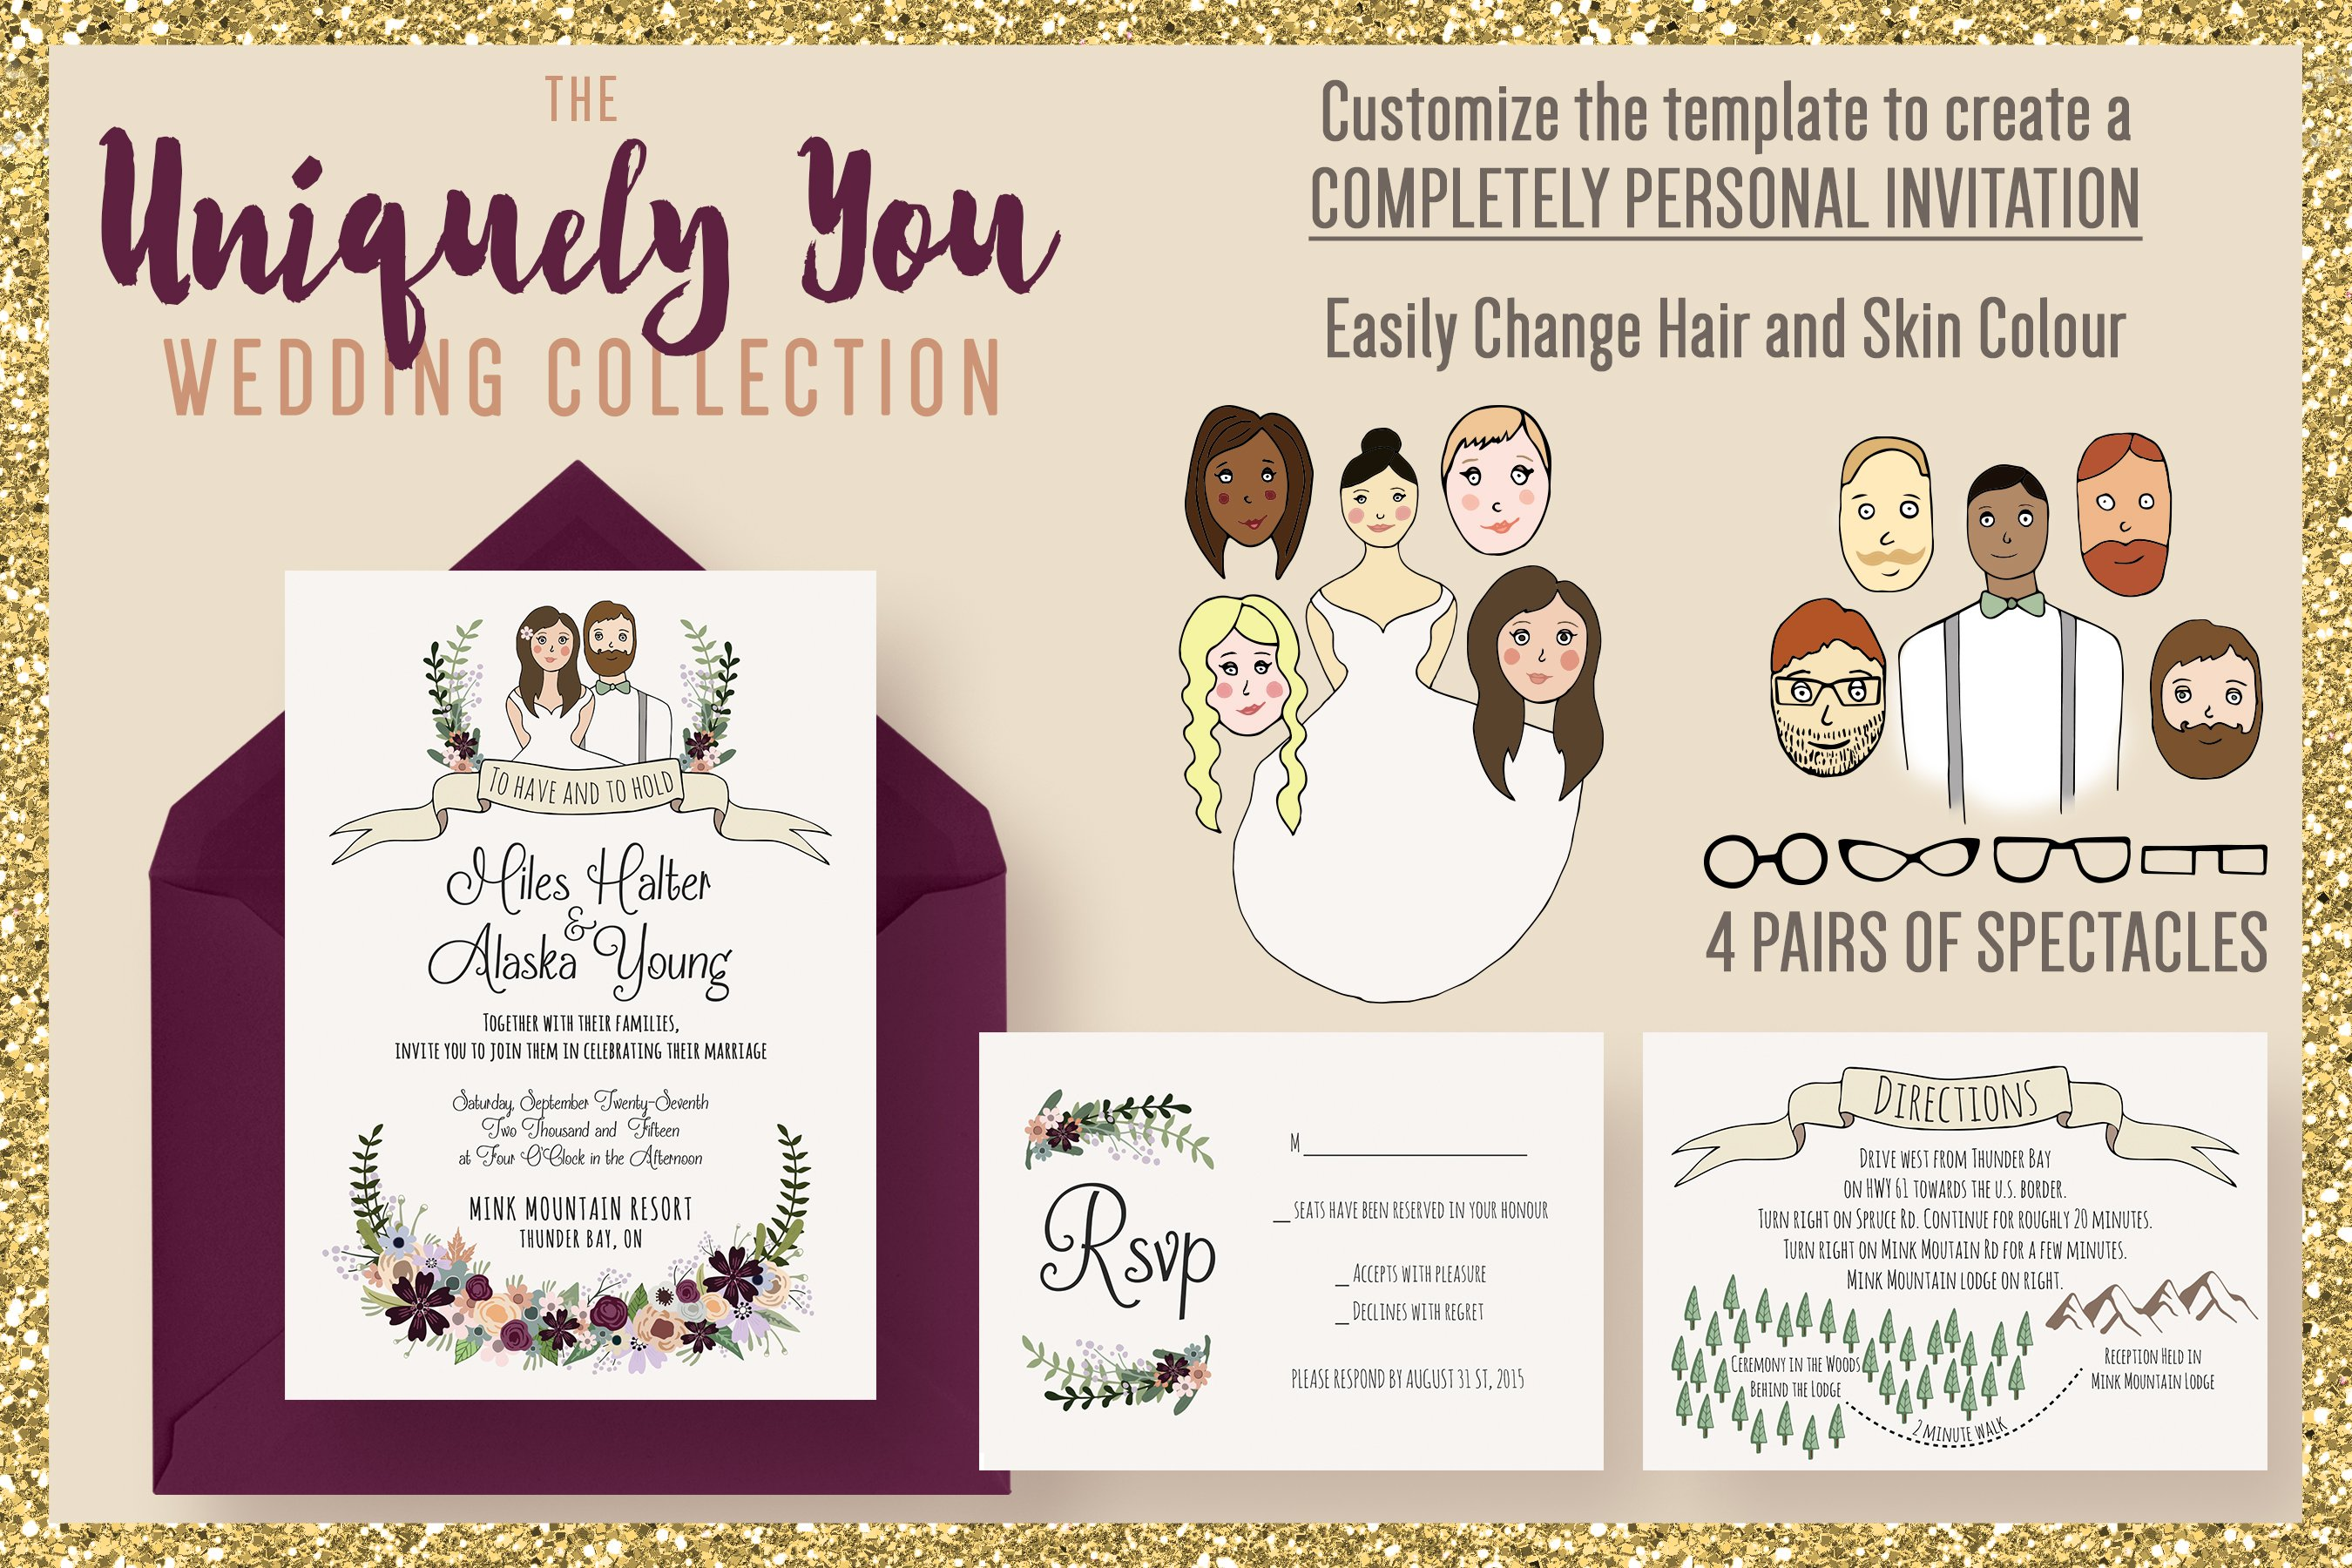 Free Samples Wedding Invitations: The Uniquely You Wedding Collection